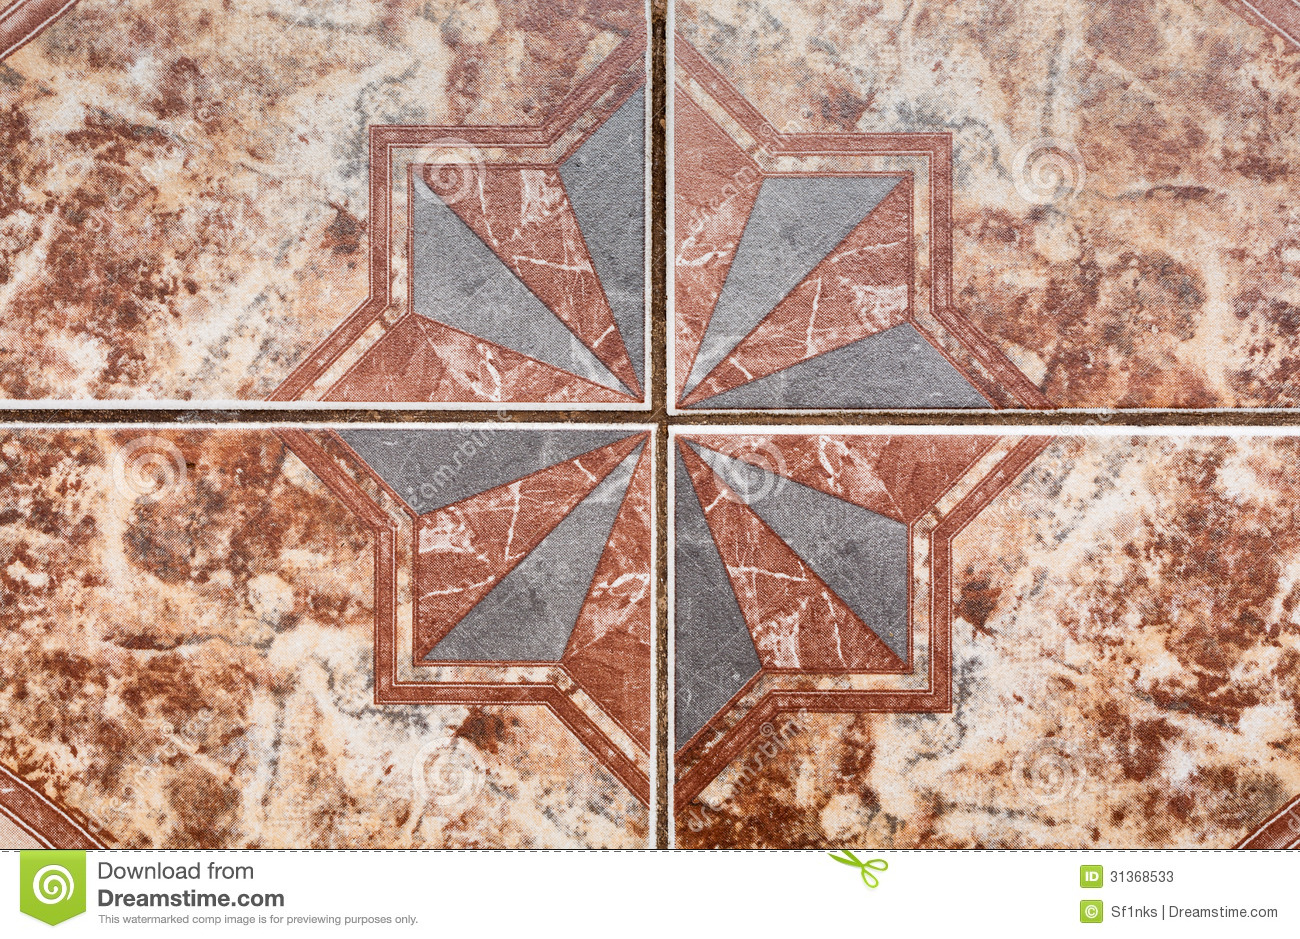 Tile pattern of ancient ceramic tiles stock image image 31368533 tile pattern of ancient ceramic tiles dailygadgetfo Image collections